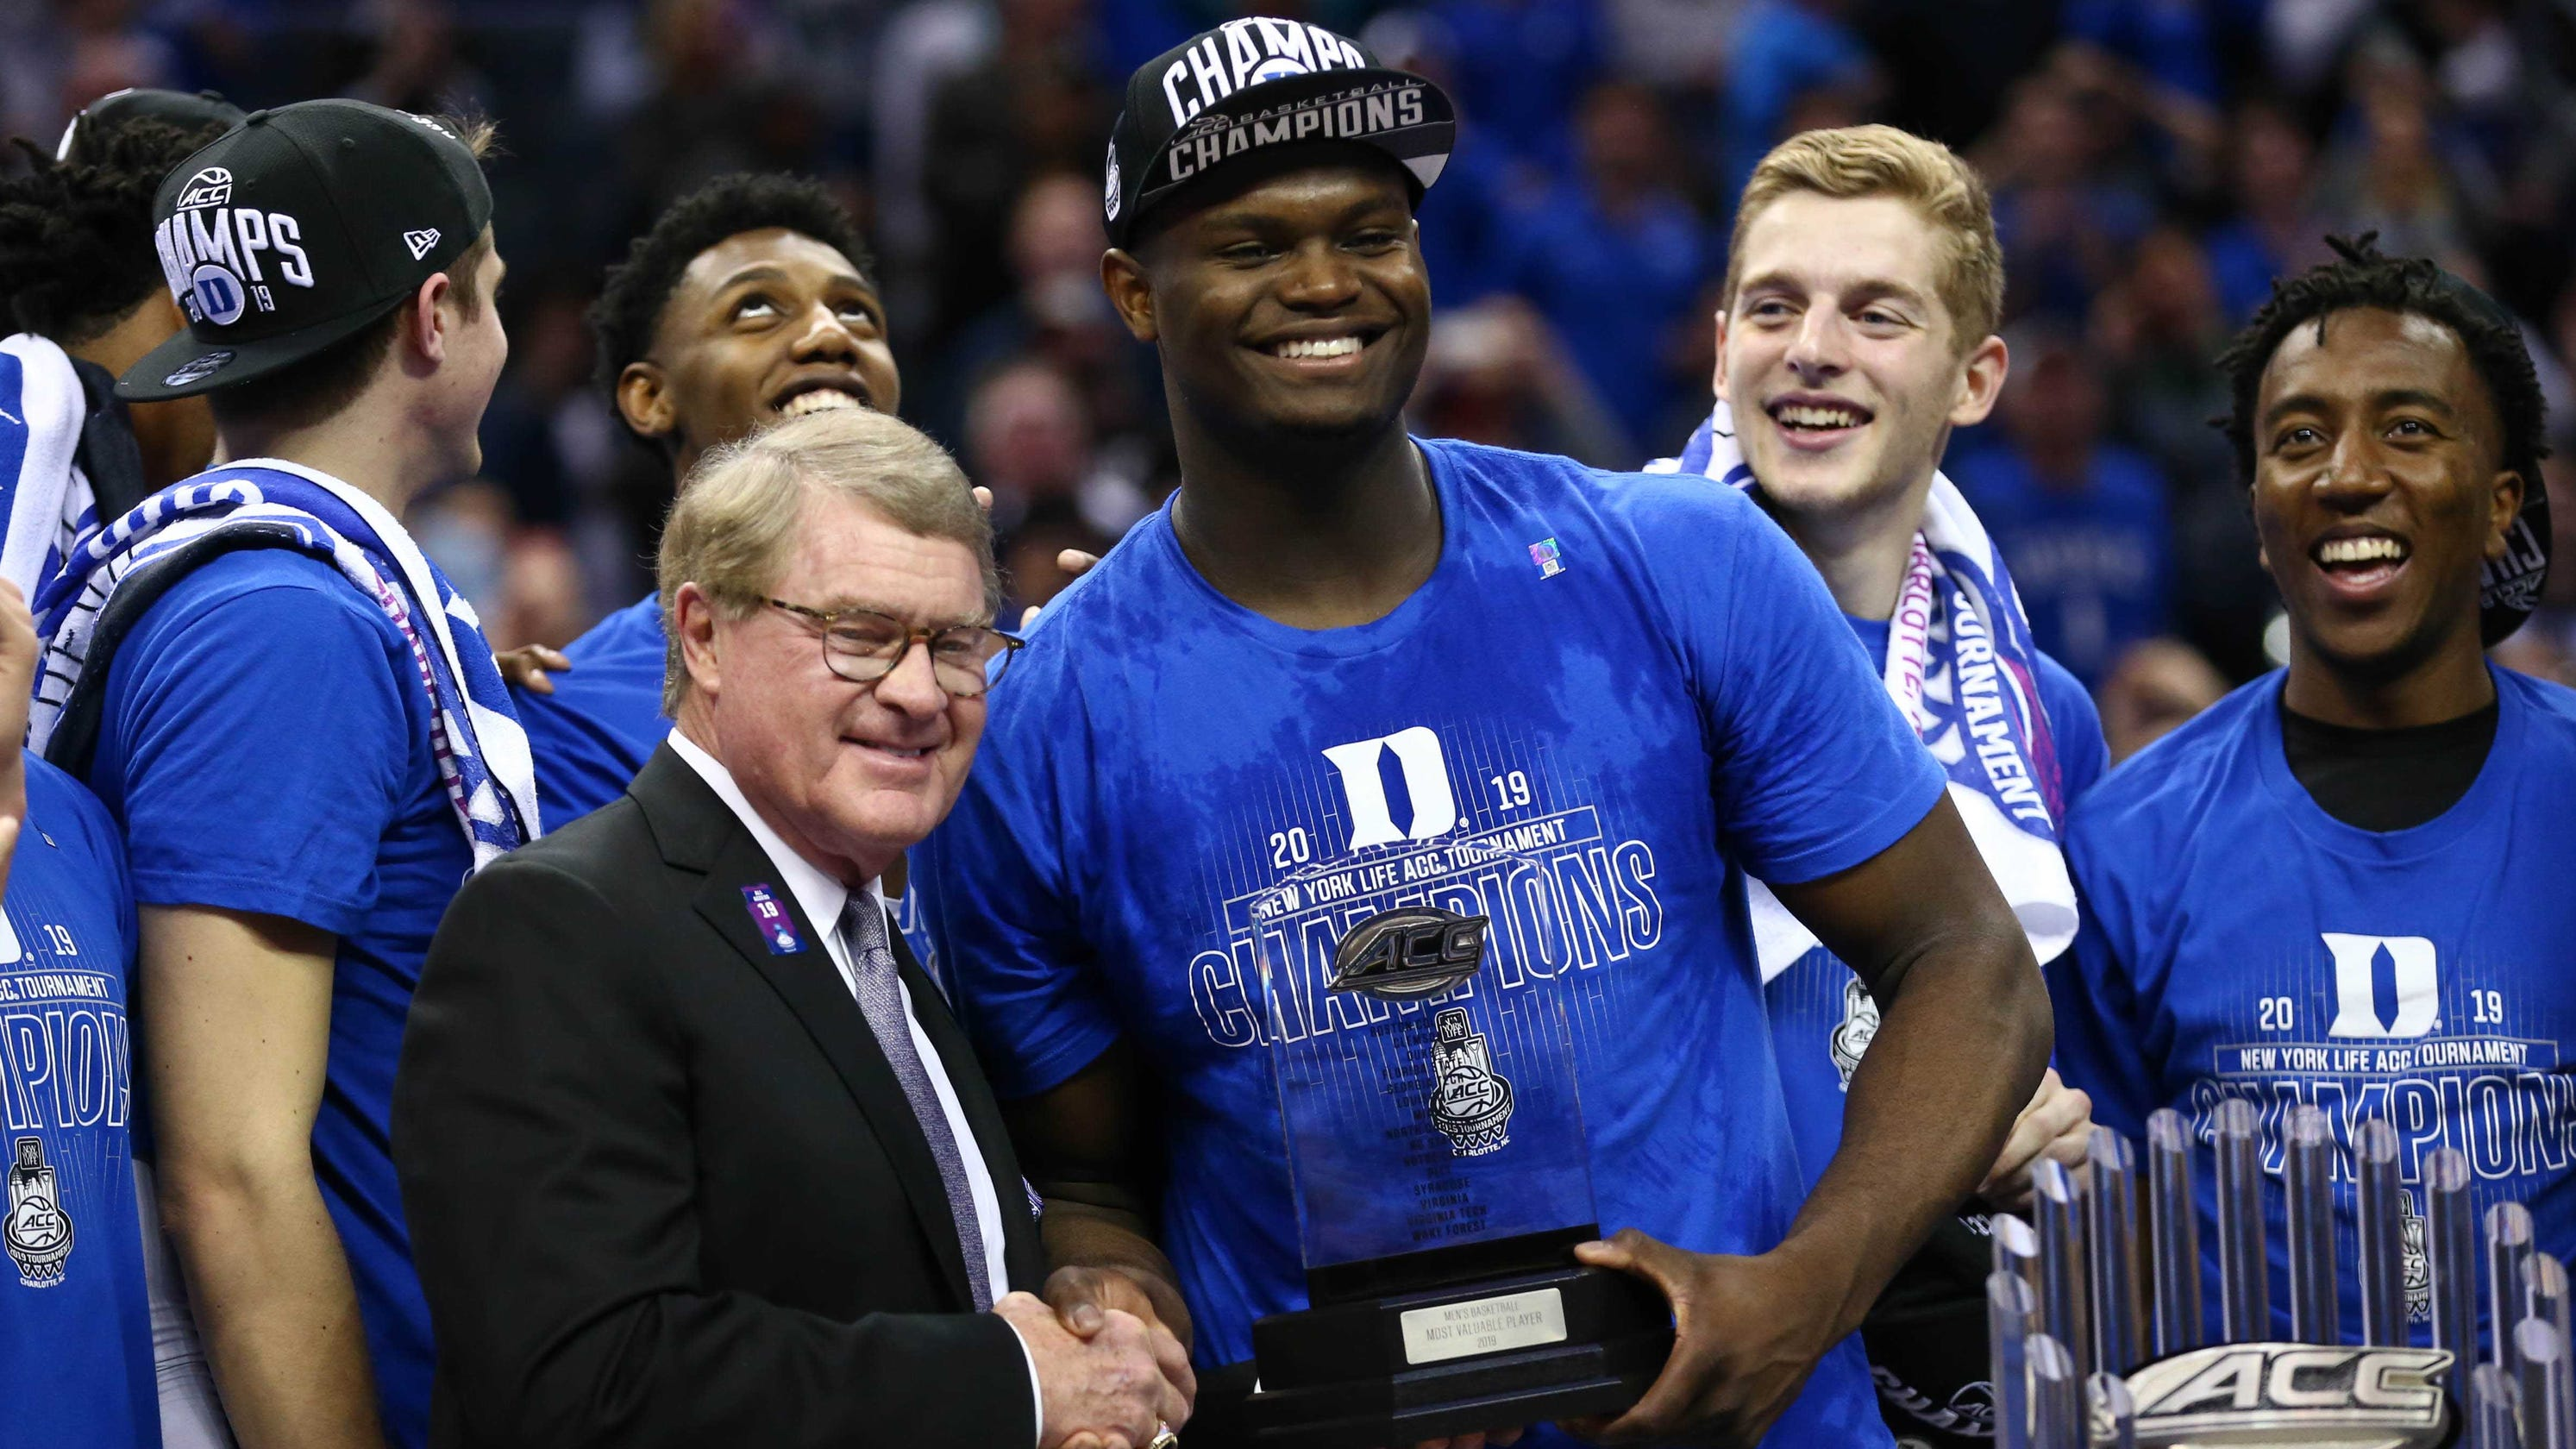 March Madness: NCAA tournament bracket analysis for East Regional